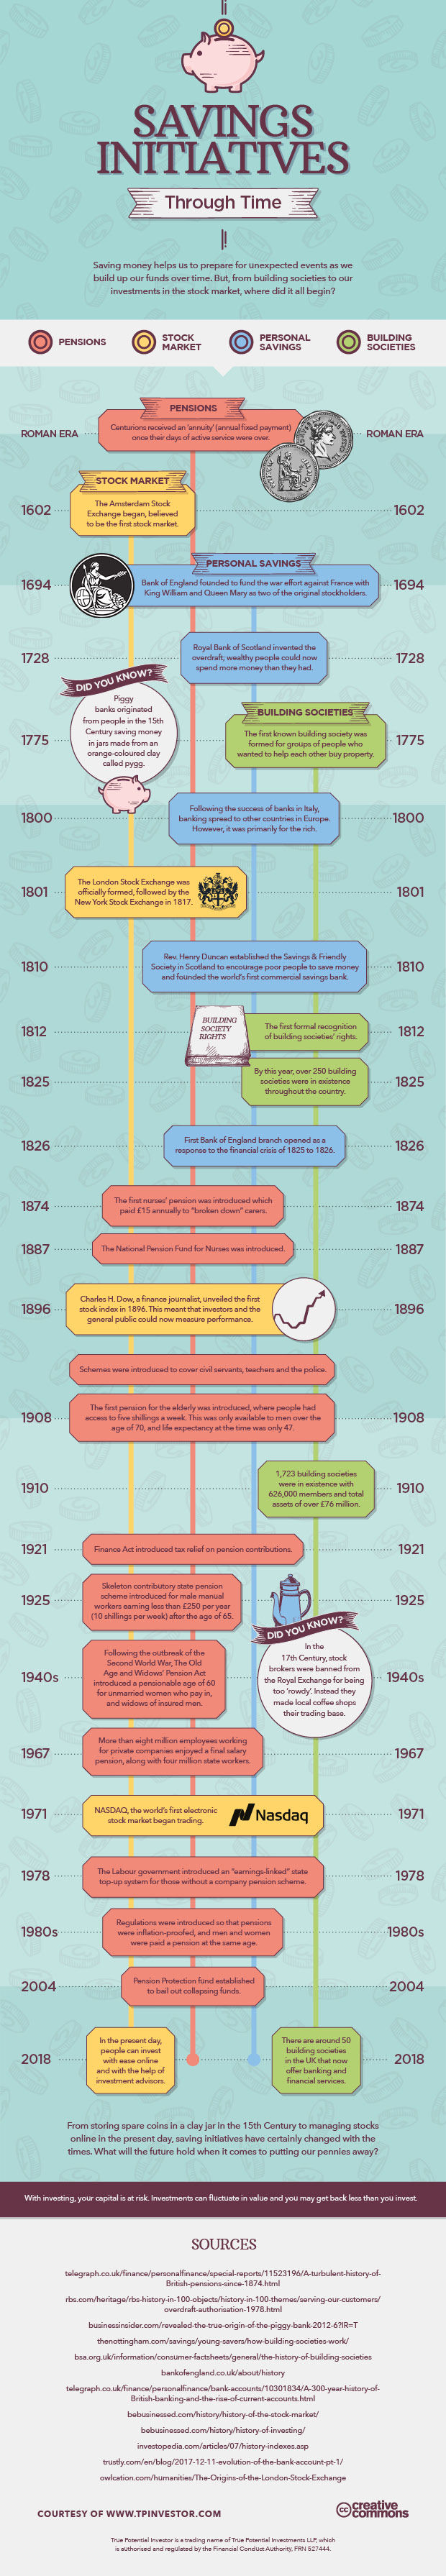 Savings Initiatives Through Time - infographic